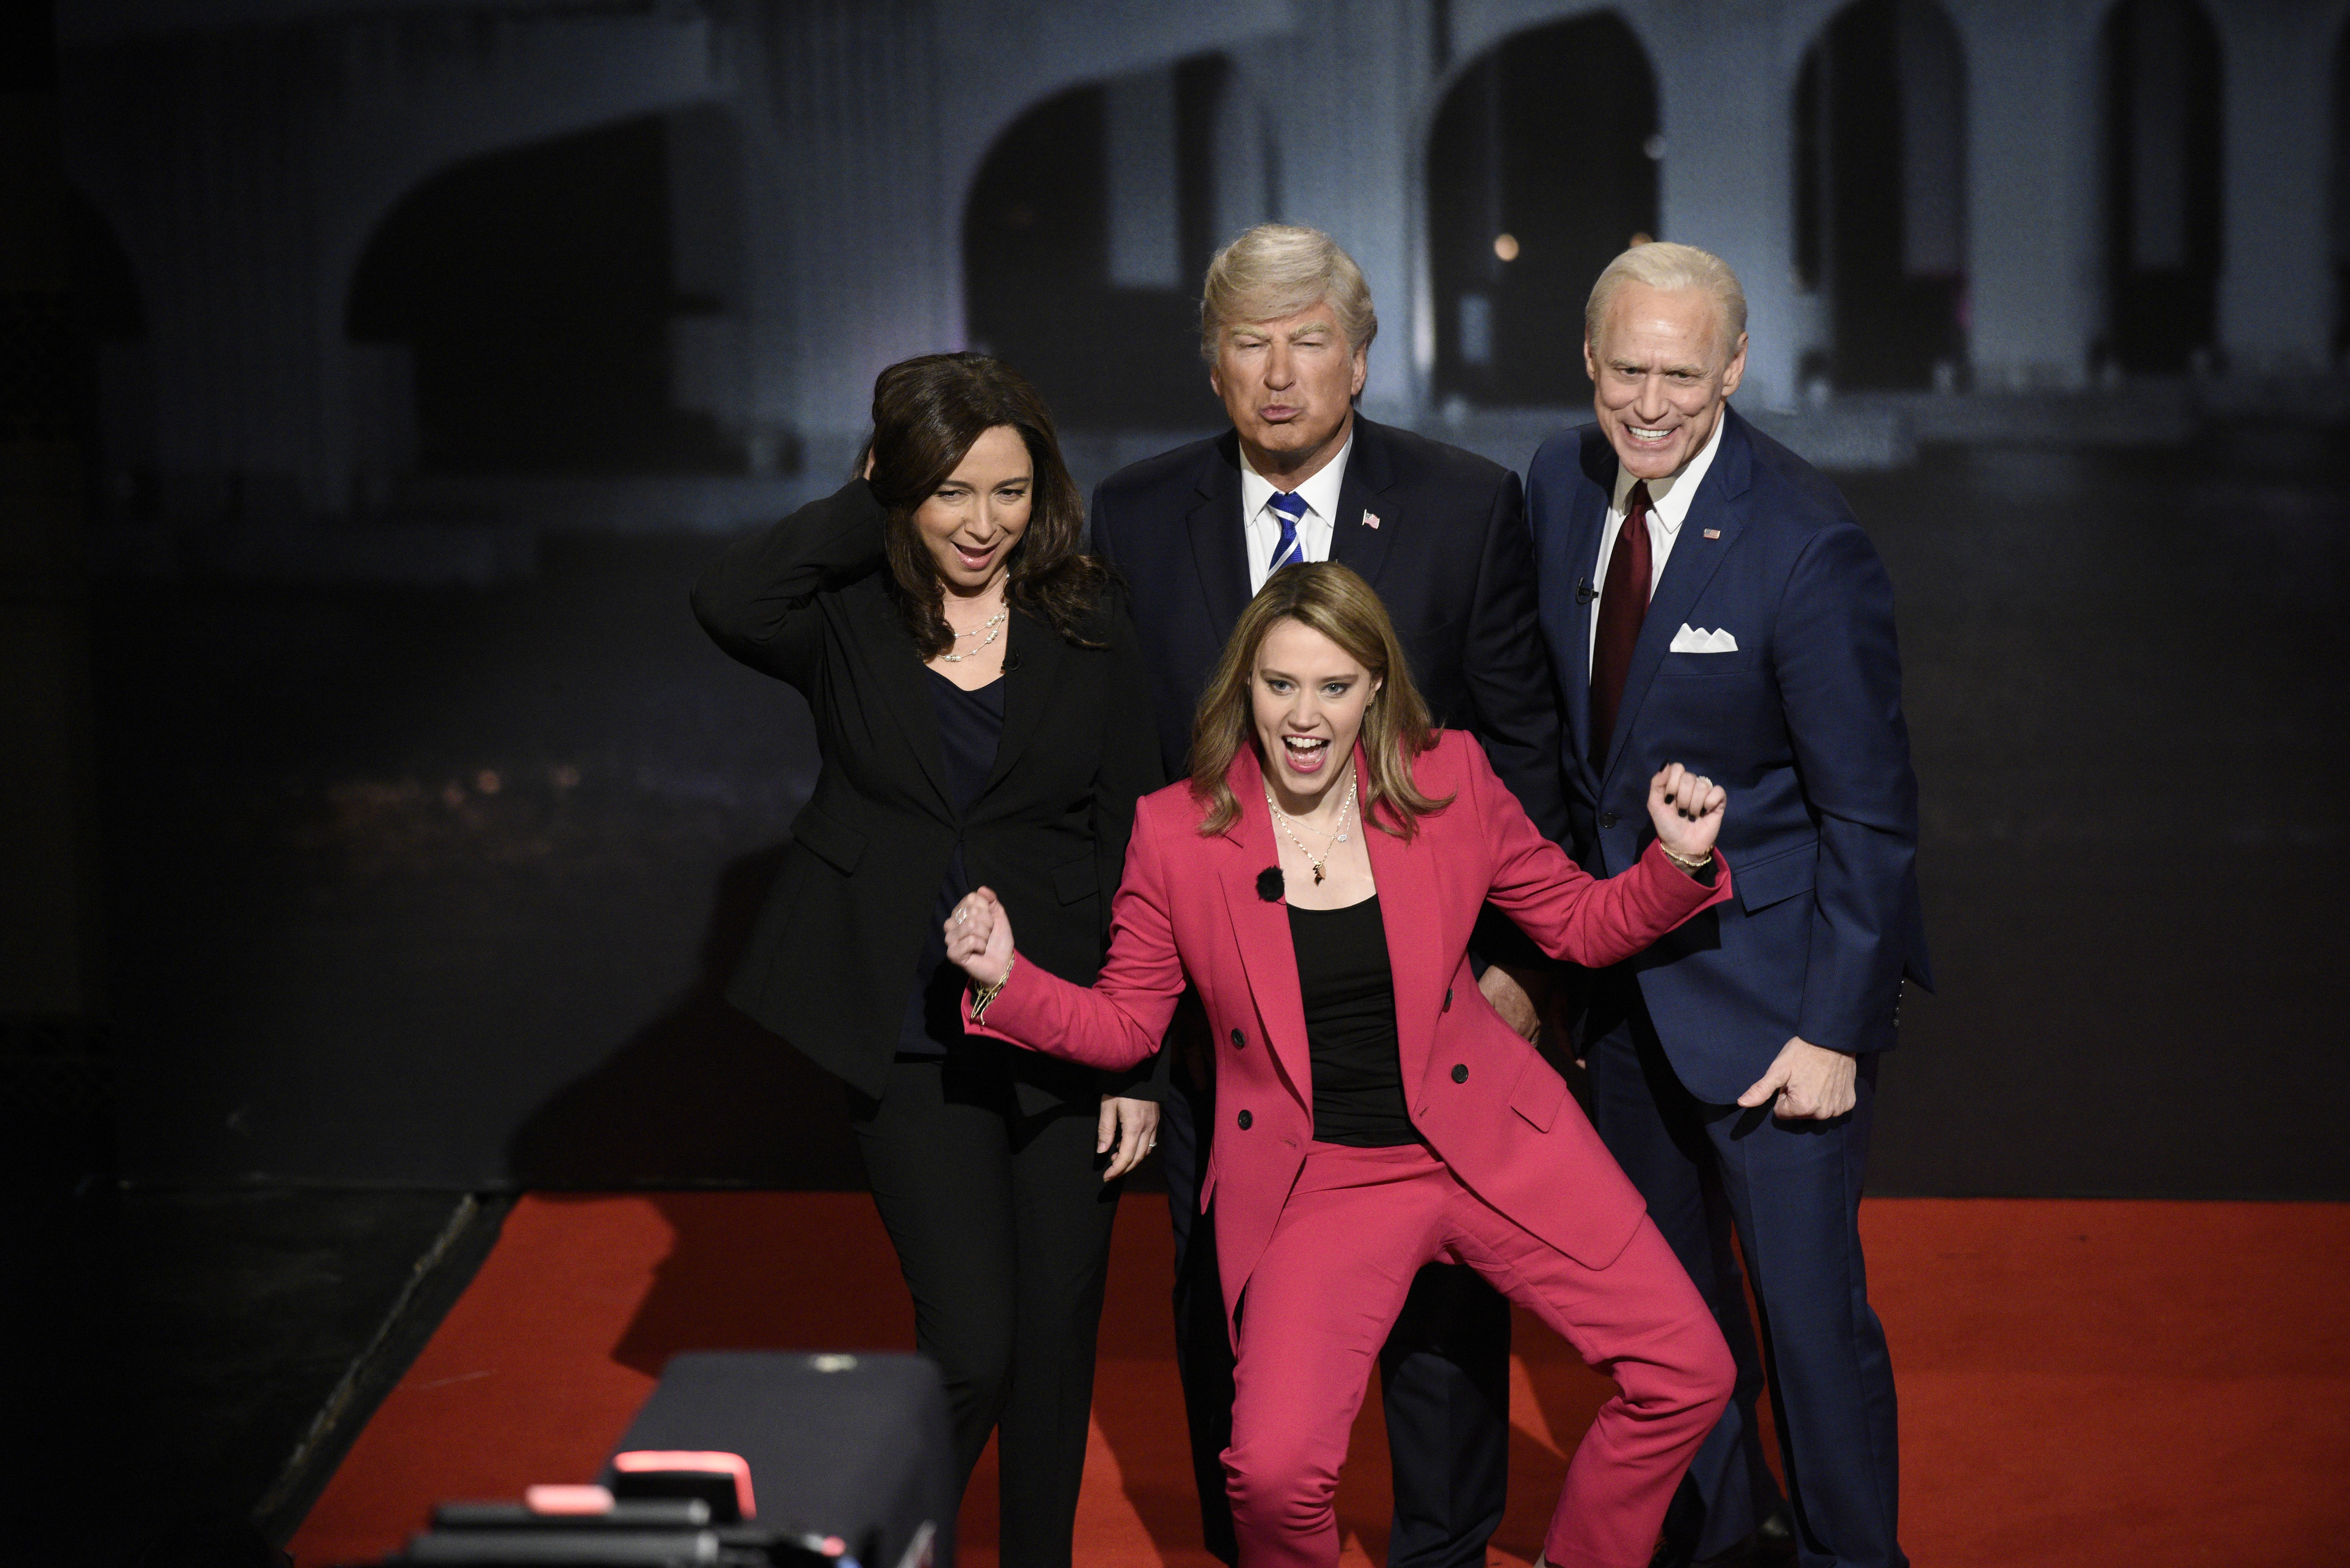 "Maya Rudolph, Alec Baldwin, Jim Carrey, and Kate McKinnon stand together dressed as Sen. Kamala Harris, President Donald Trump, Democratic nominee Joe Biden, and NBC's Savannah Guthrie. All the ""politicians"" have on dark suits; Baldwin is pouting, Carrey smiling broadly. McKinnon, in a pink suit, shouts, her arms raised."